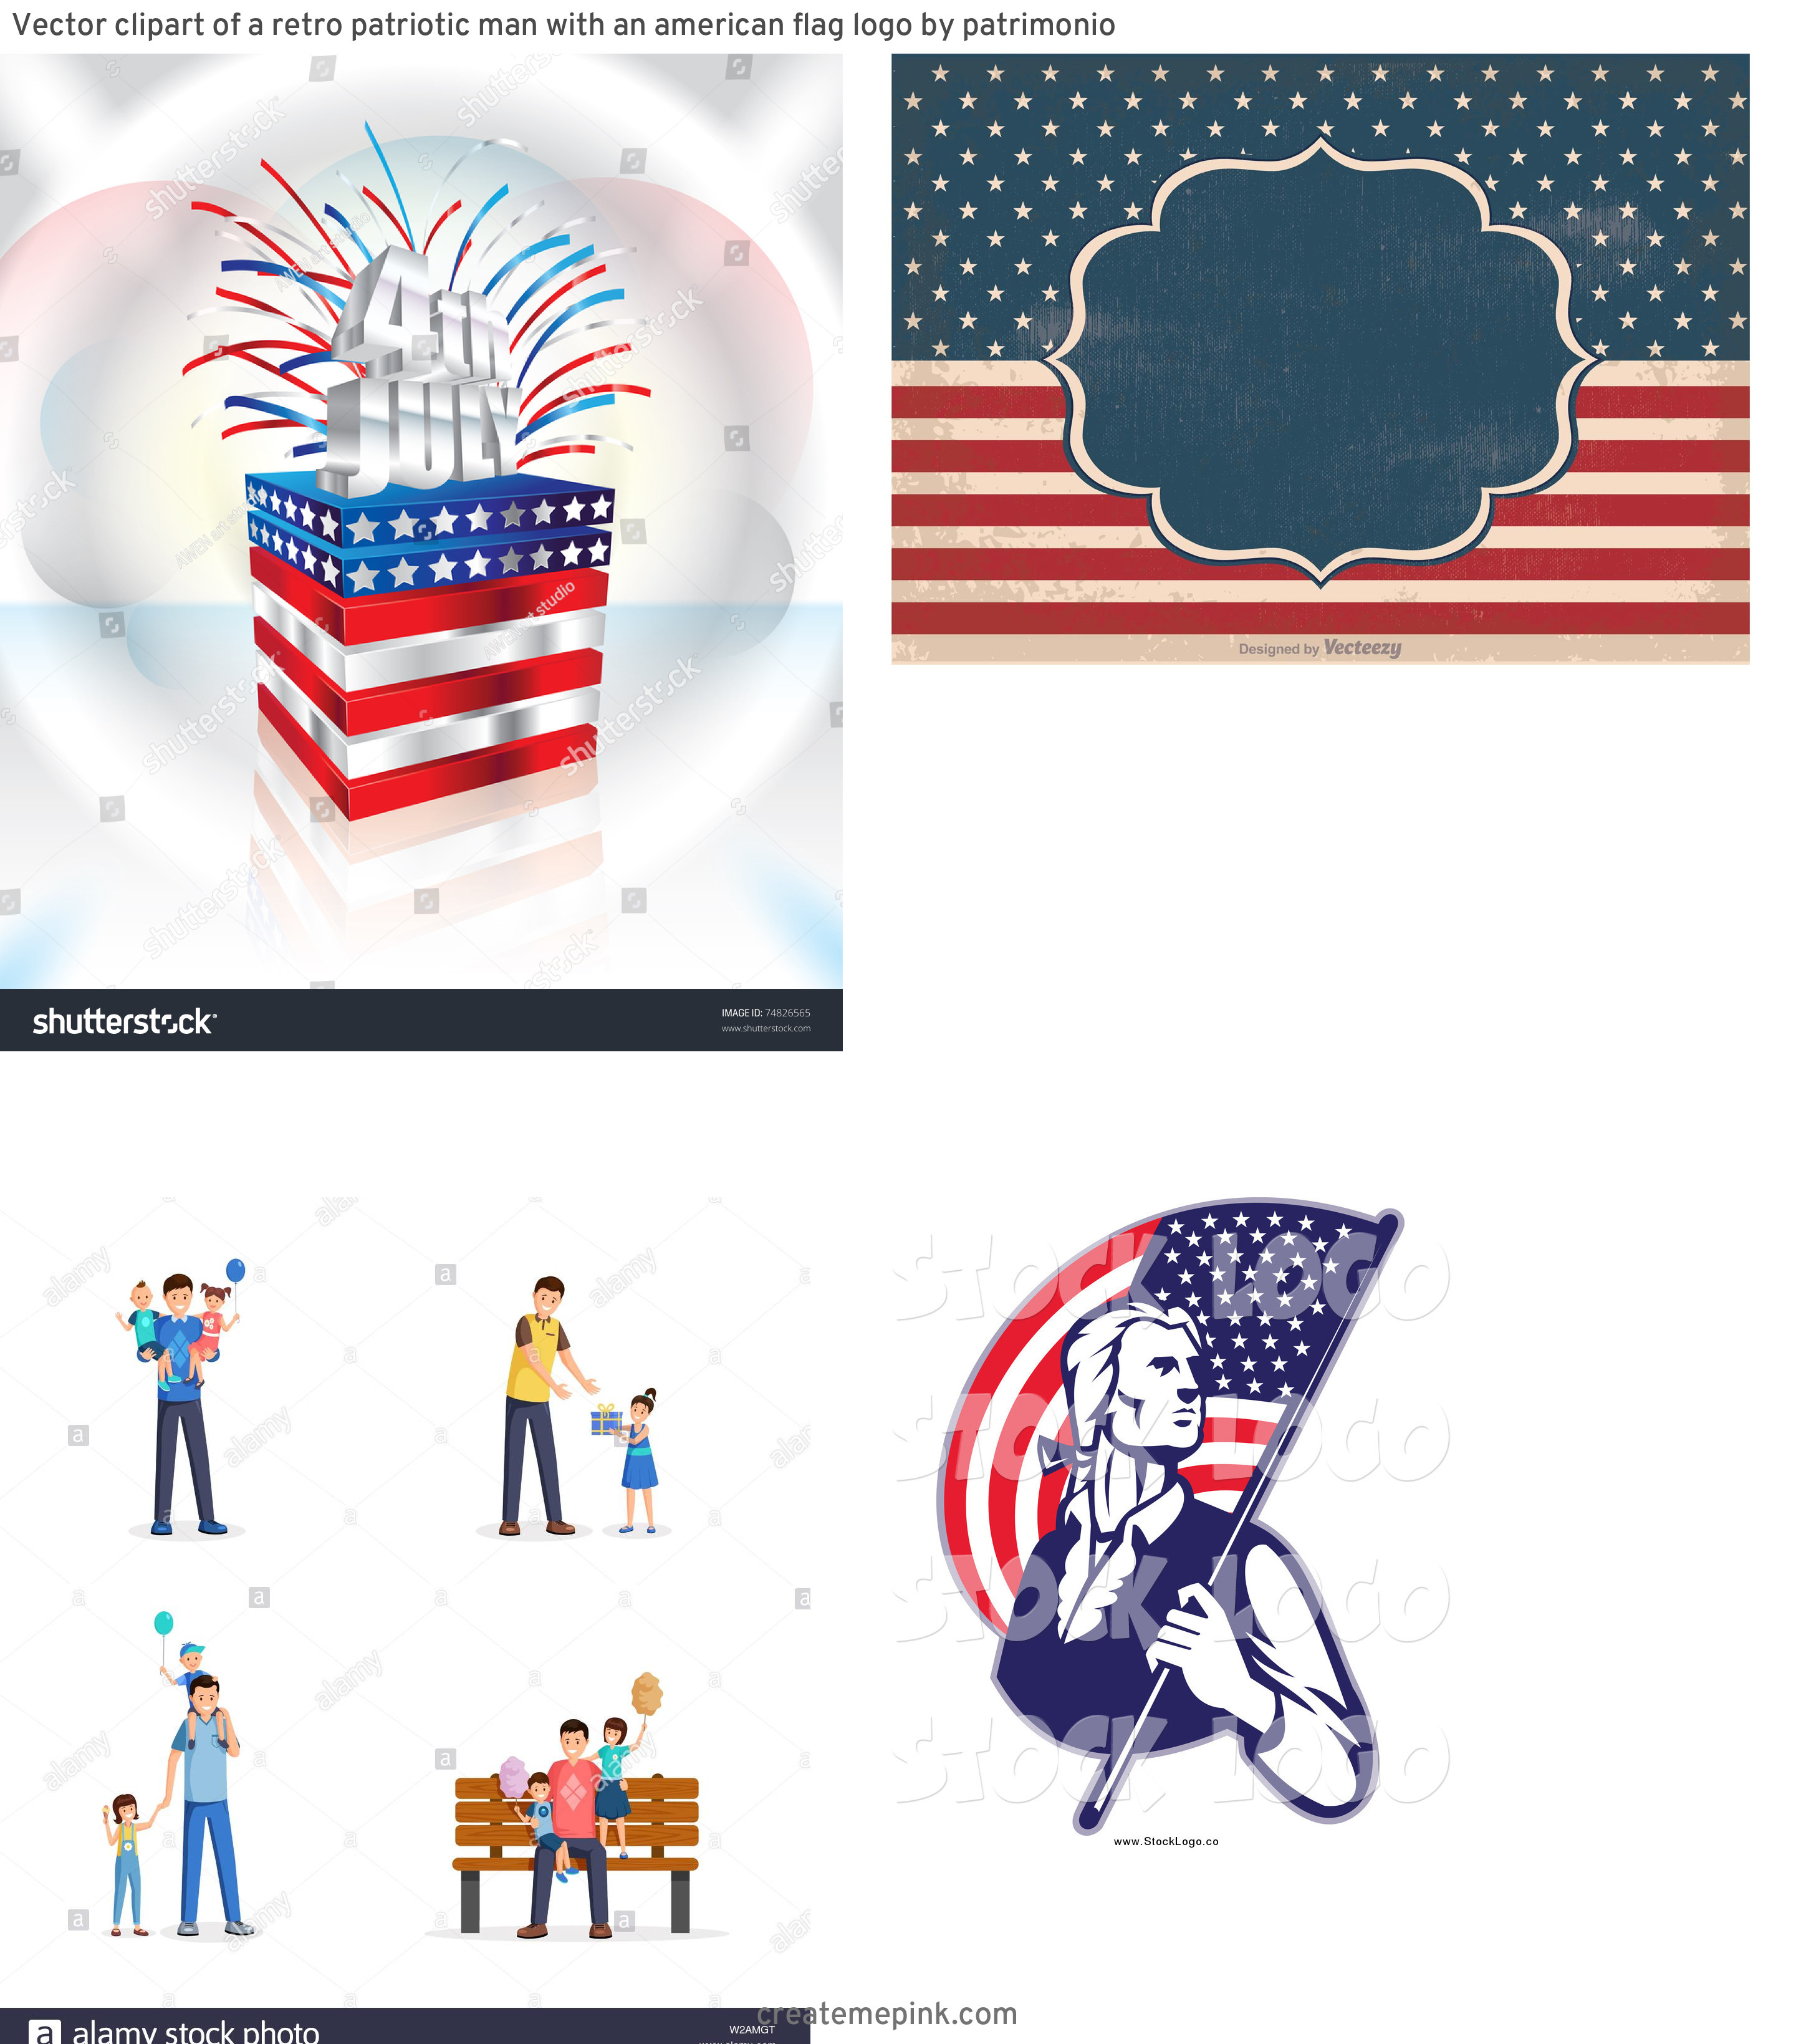 4th Of July Vectors For Men's: Vector Clipart Of A Retro Patriotic Man With An American Flag Logo By Patrimonio